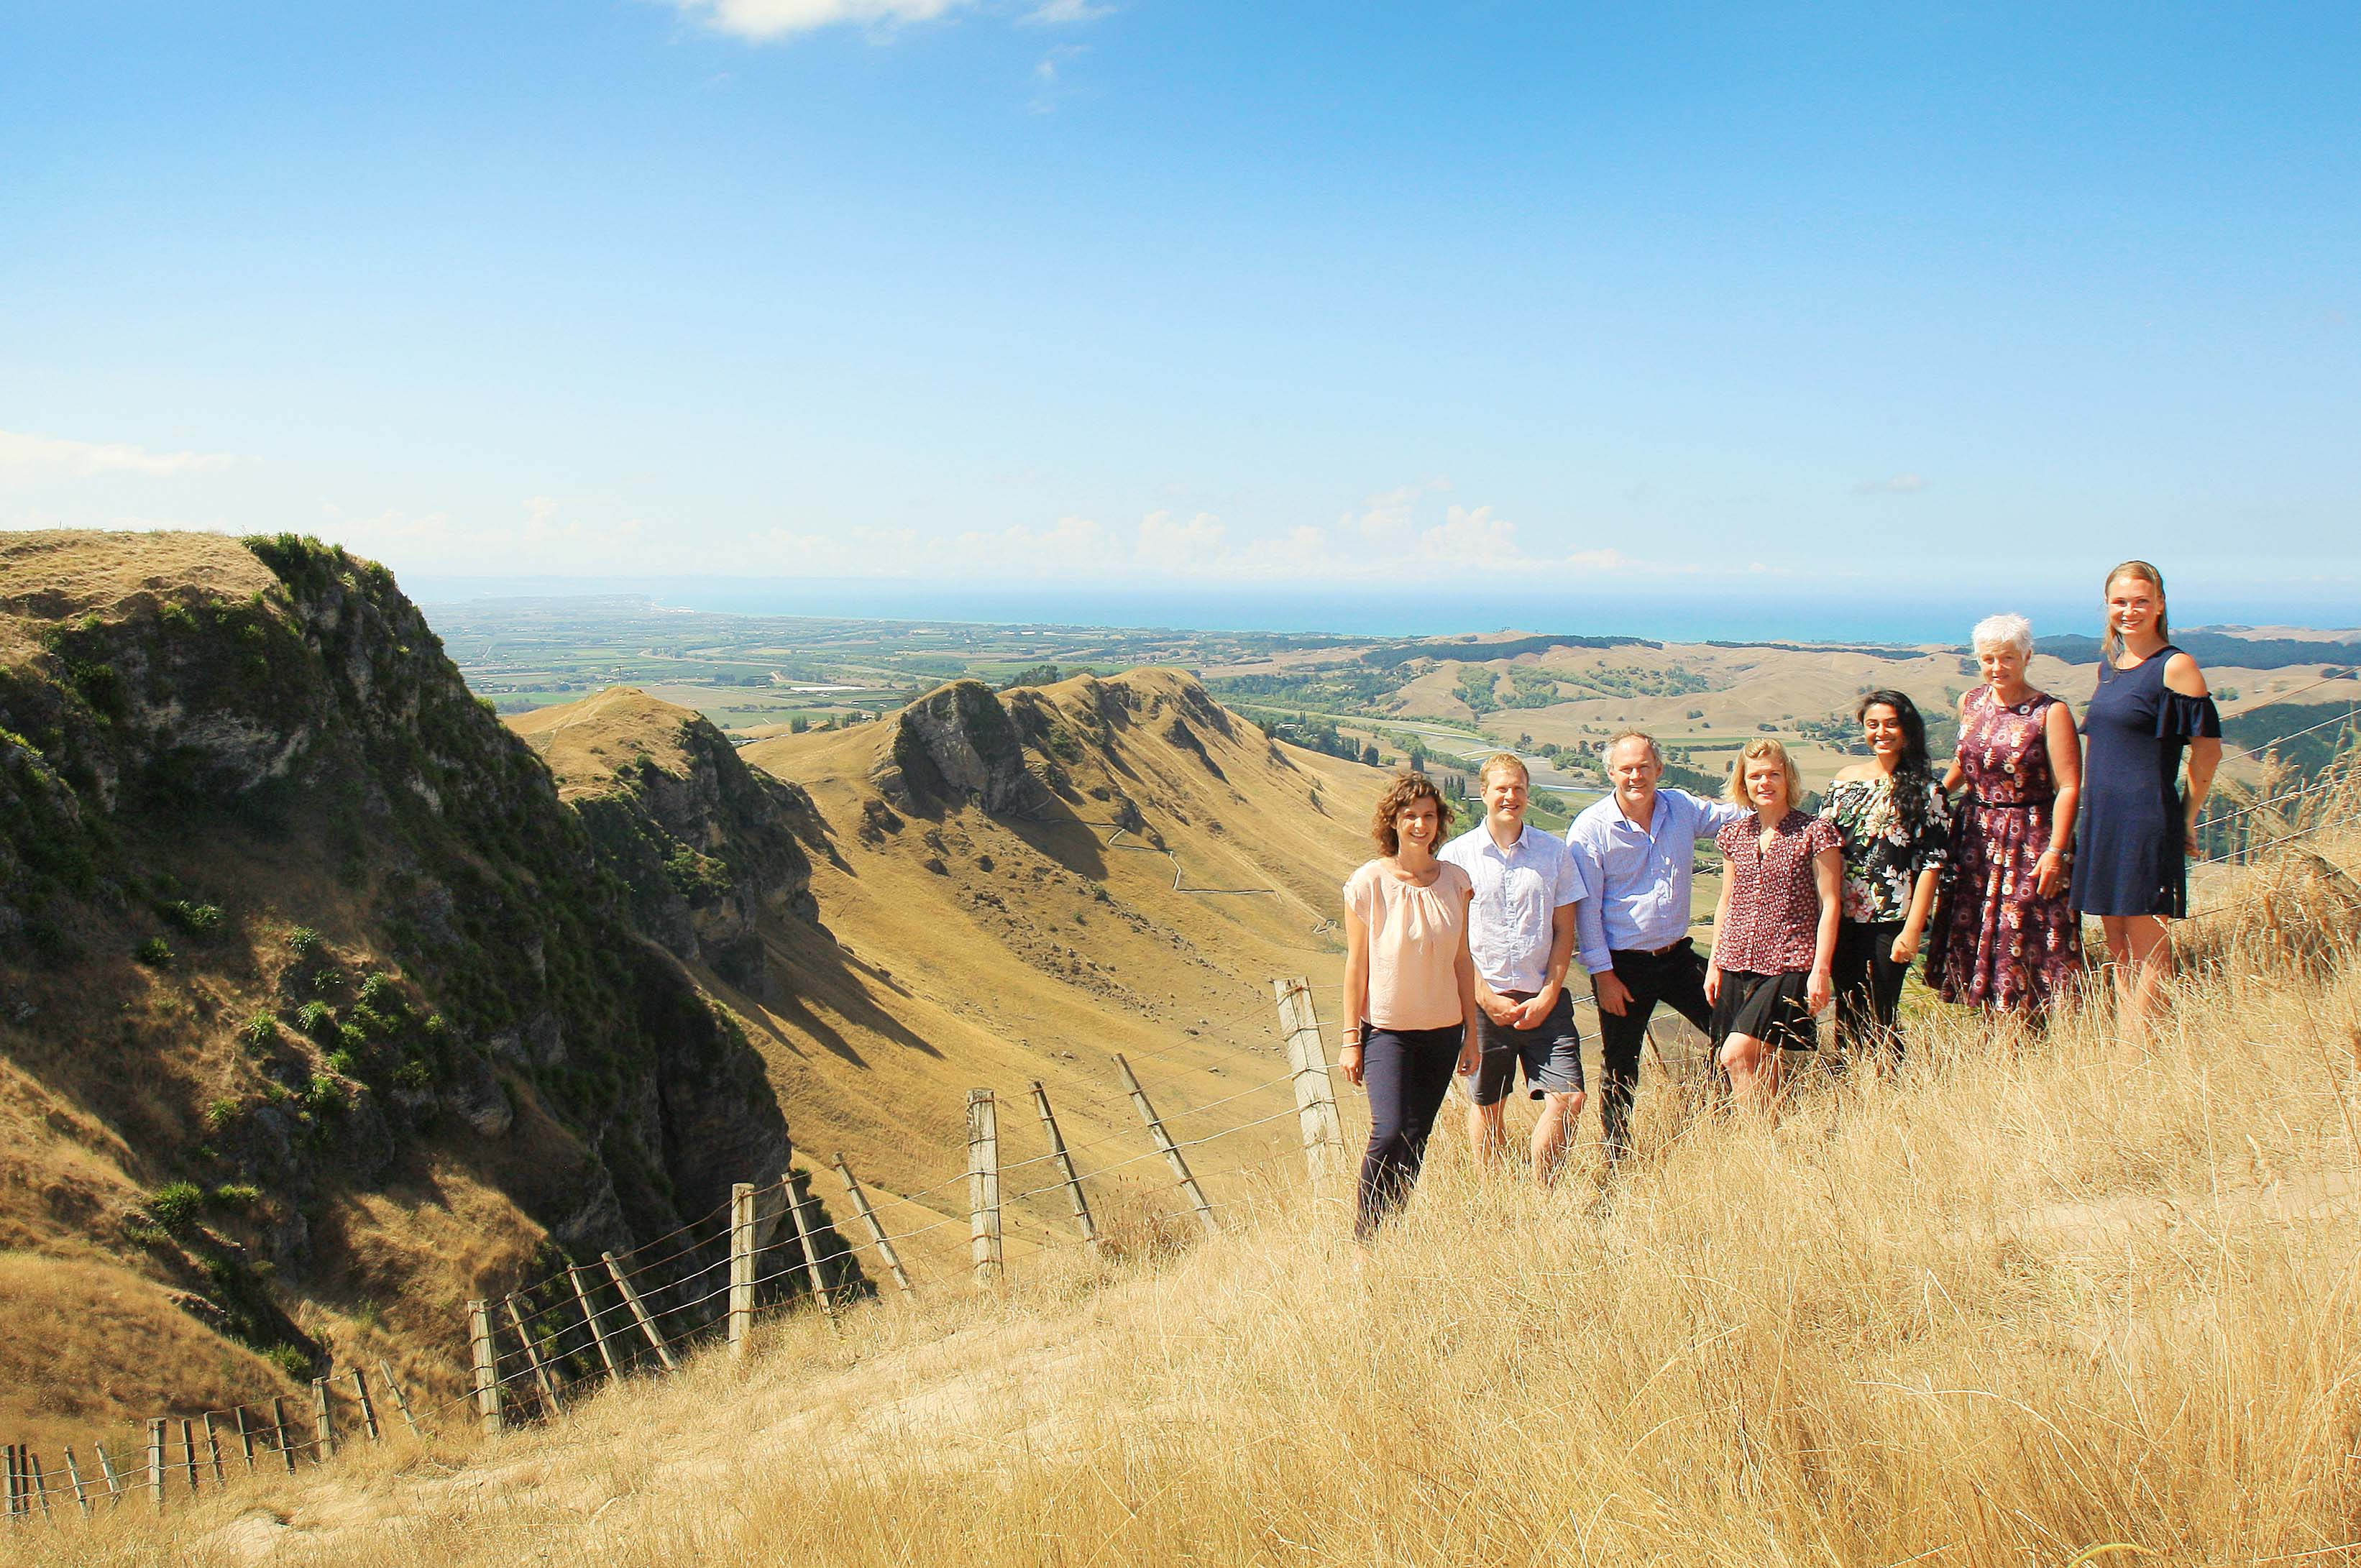 First Chiropractic's team of Chiropractors Dr. Emma Mead, Dr. Chris Anderson, Dr. Jeremy Gilbert, Dr. Tamzin Drawe, Dr. Sonam Patel, Dr. Denise Brown and Dr. Kate Anderson provide Hawke's Bay residents a modern approach to long-term health and well-being.